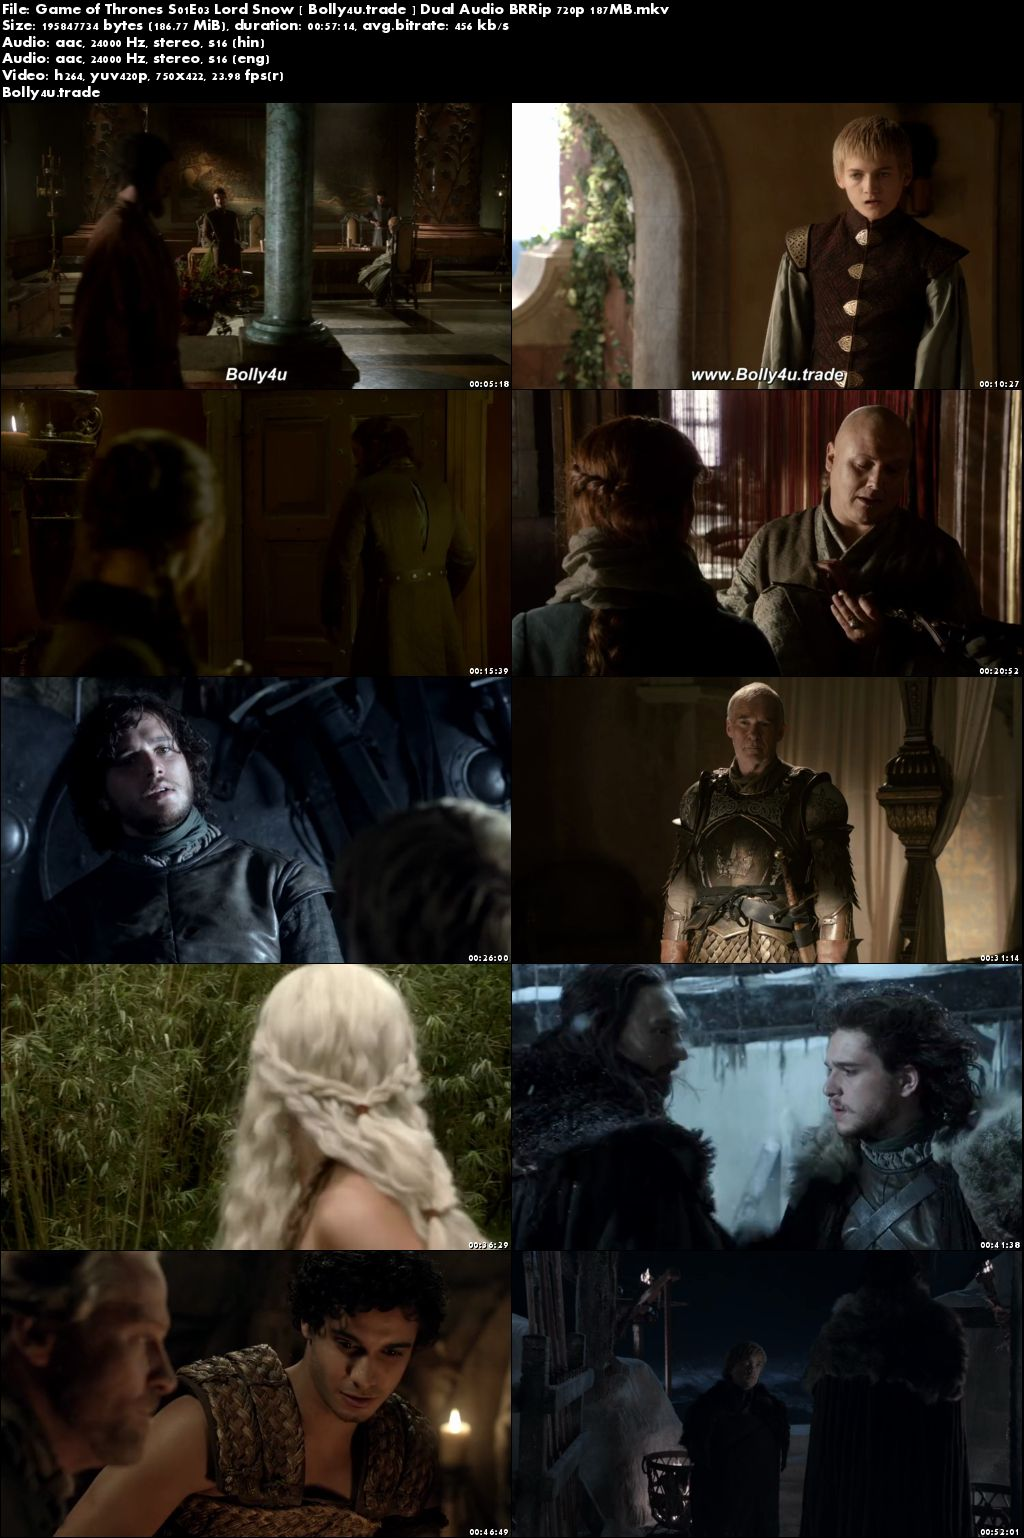 Game of Thrones S01E03 Lord Snow BRRip 180MB Hindi Dual Audio 480p Dpwm;pad